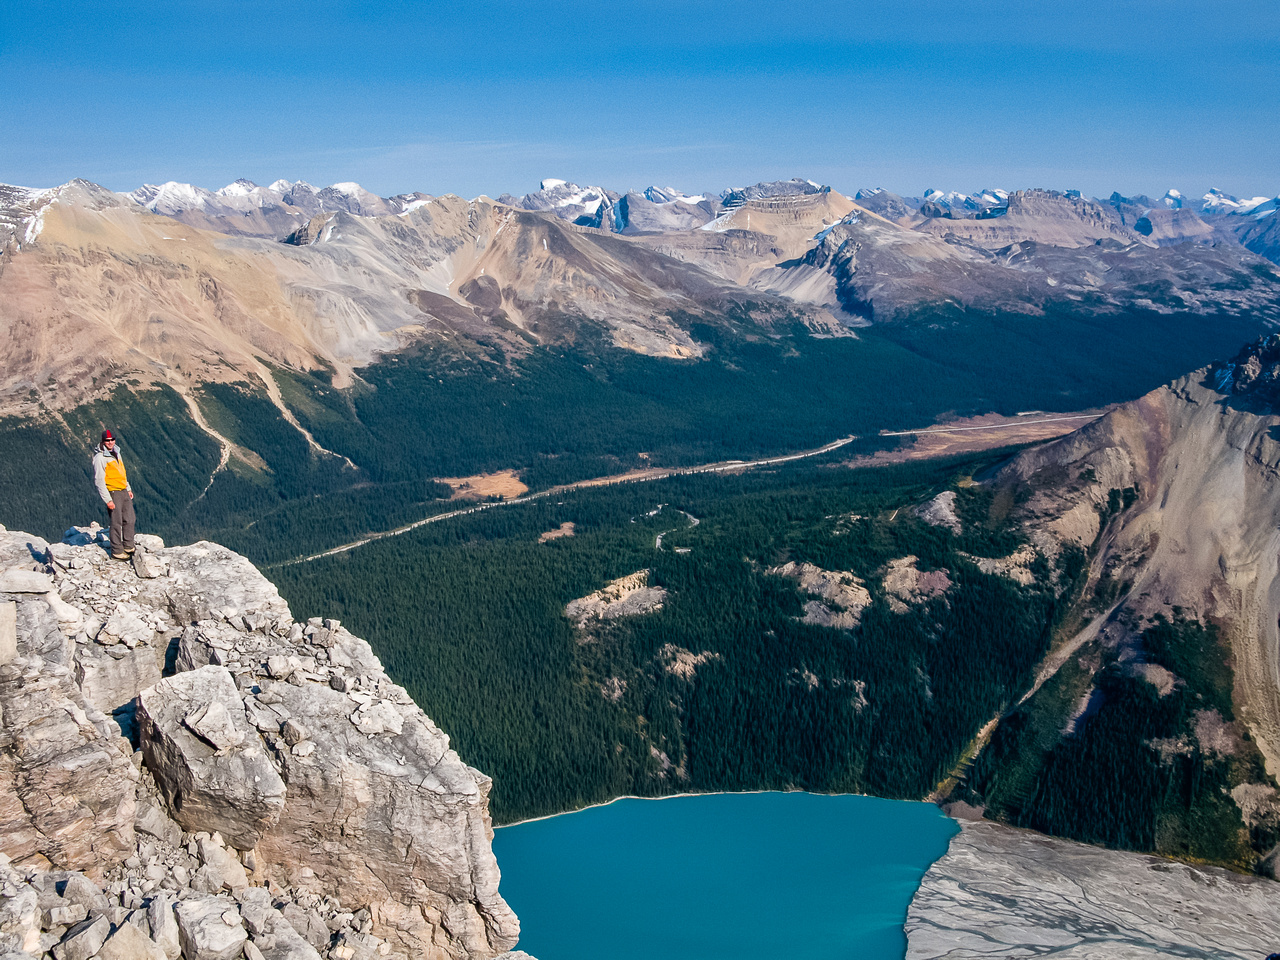 A great shot of Raf with Peyto Lake far below.